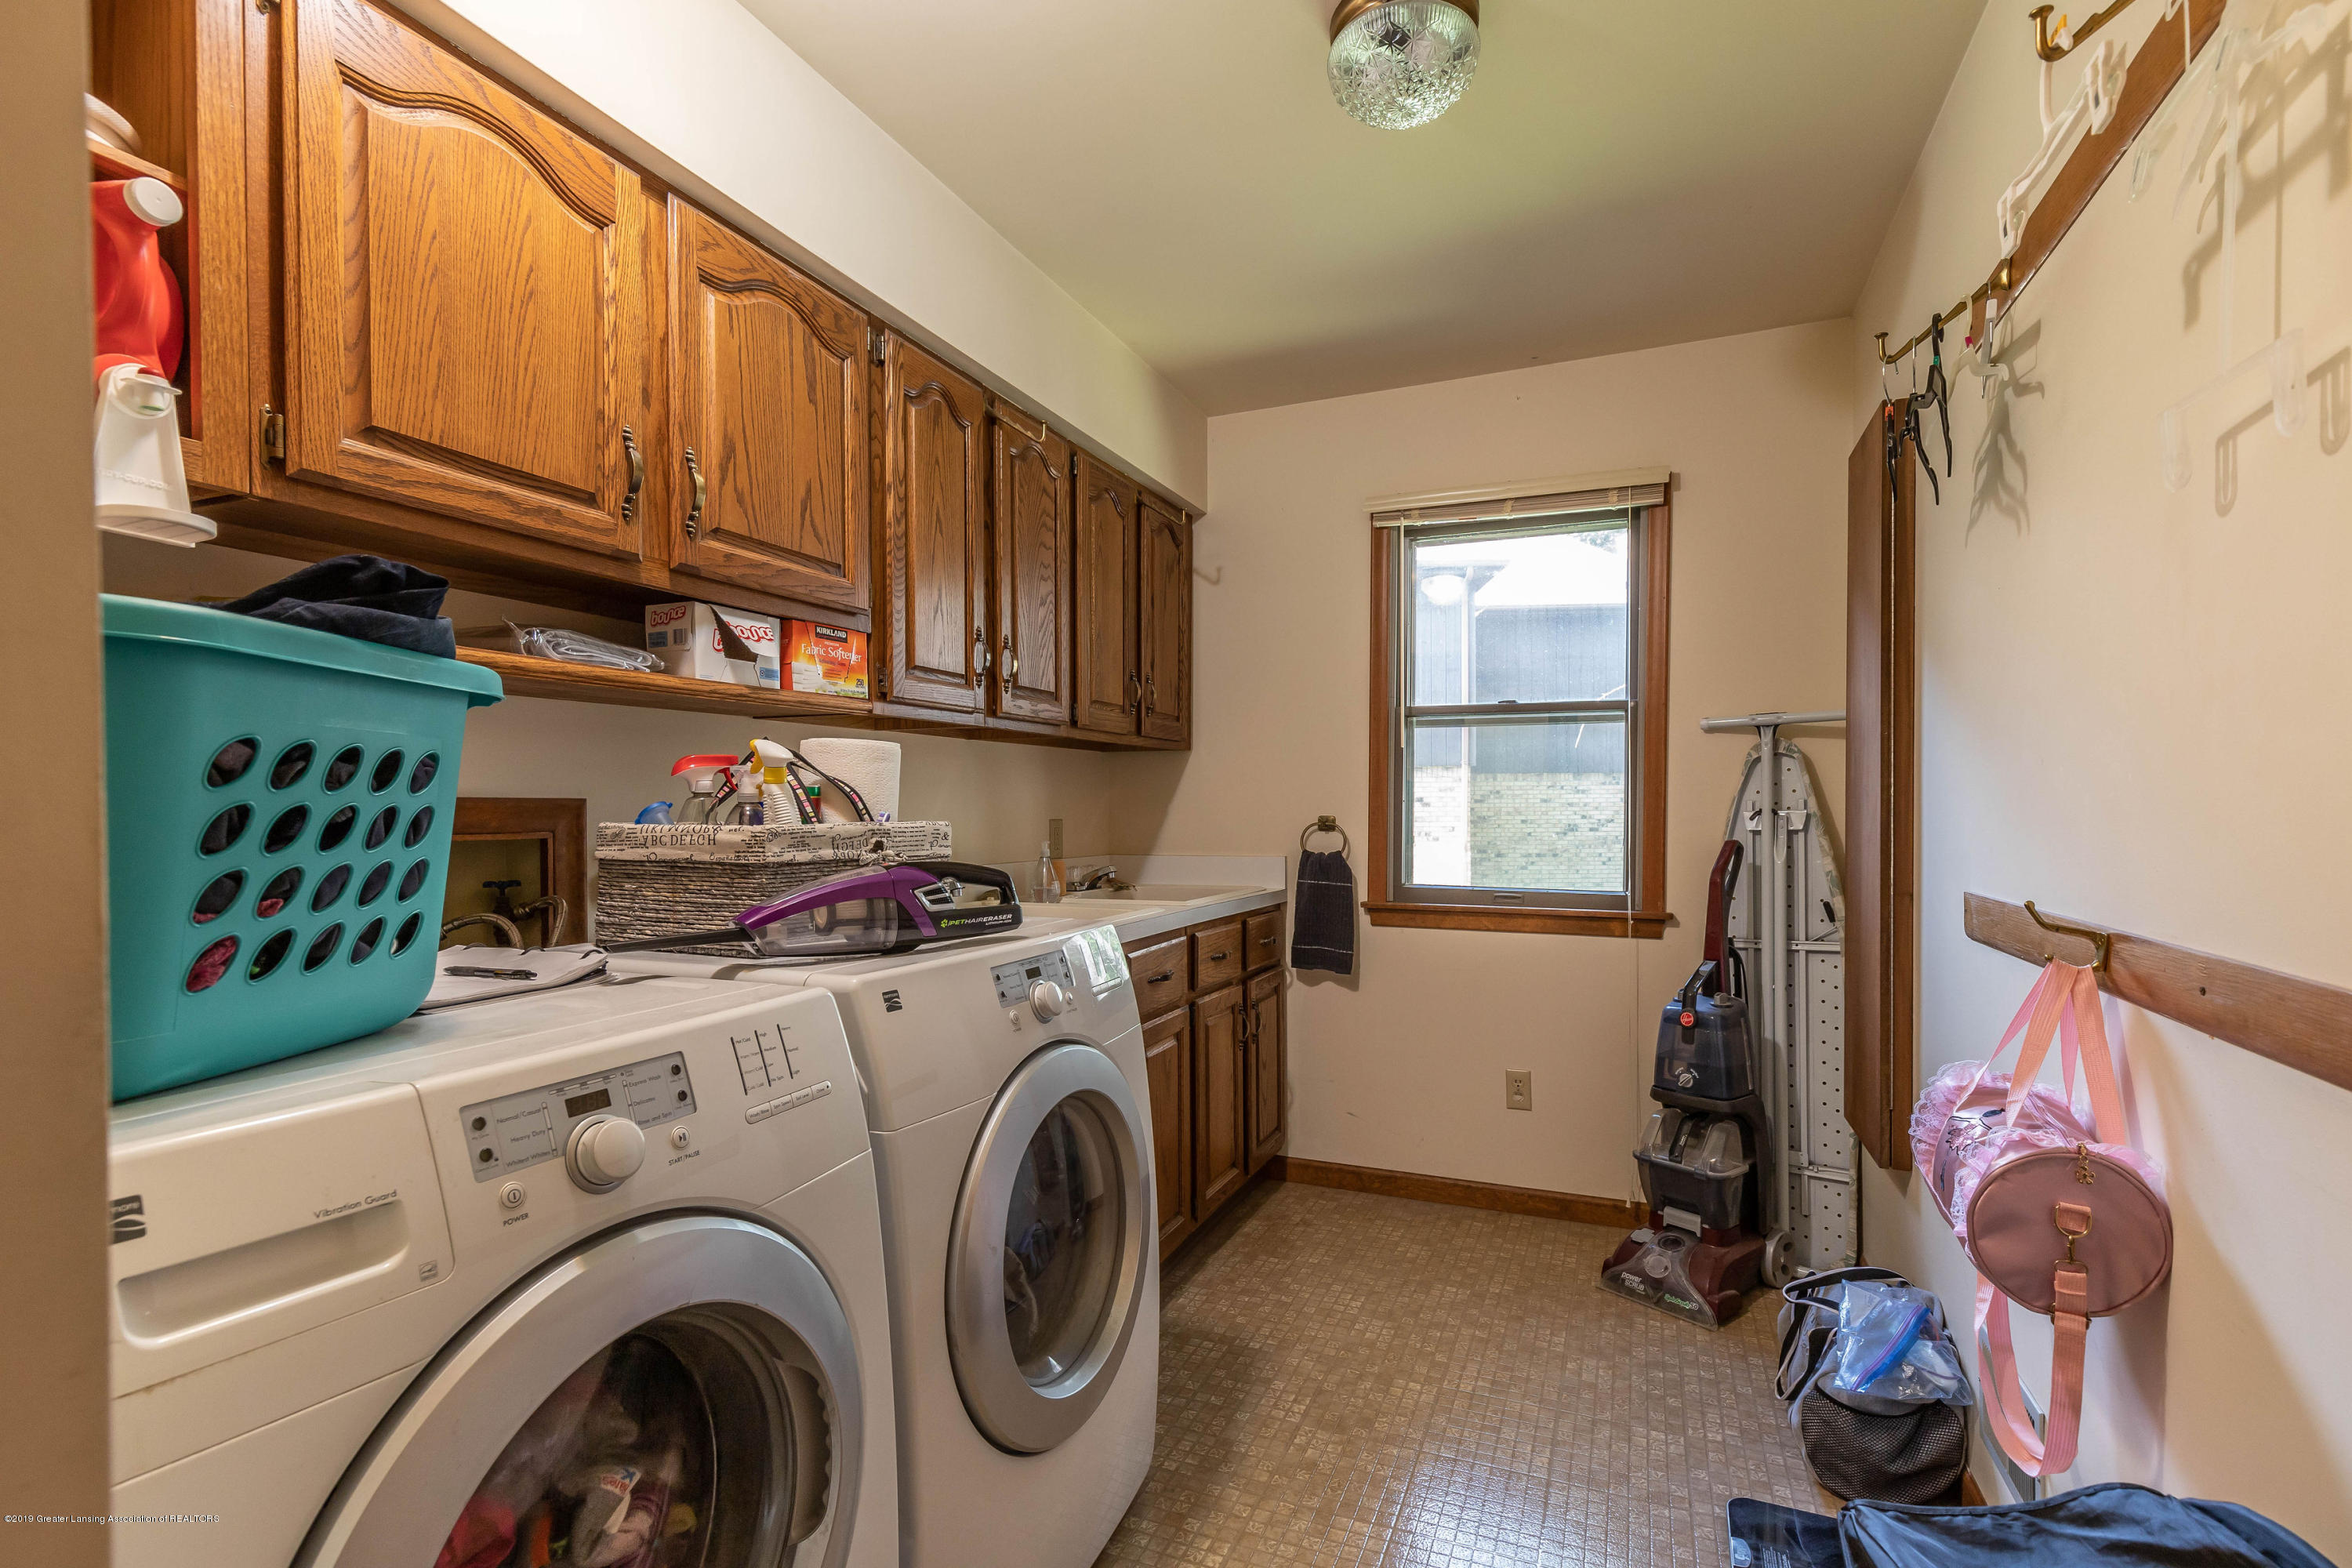 4284 Conifer Cir - coniferlaundry(1of1) - 36